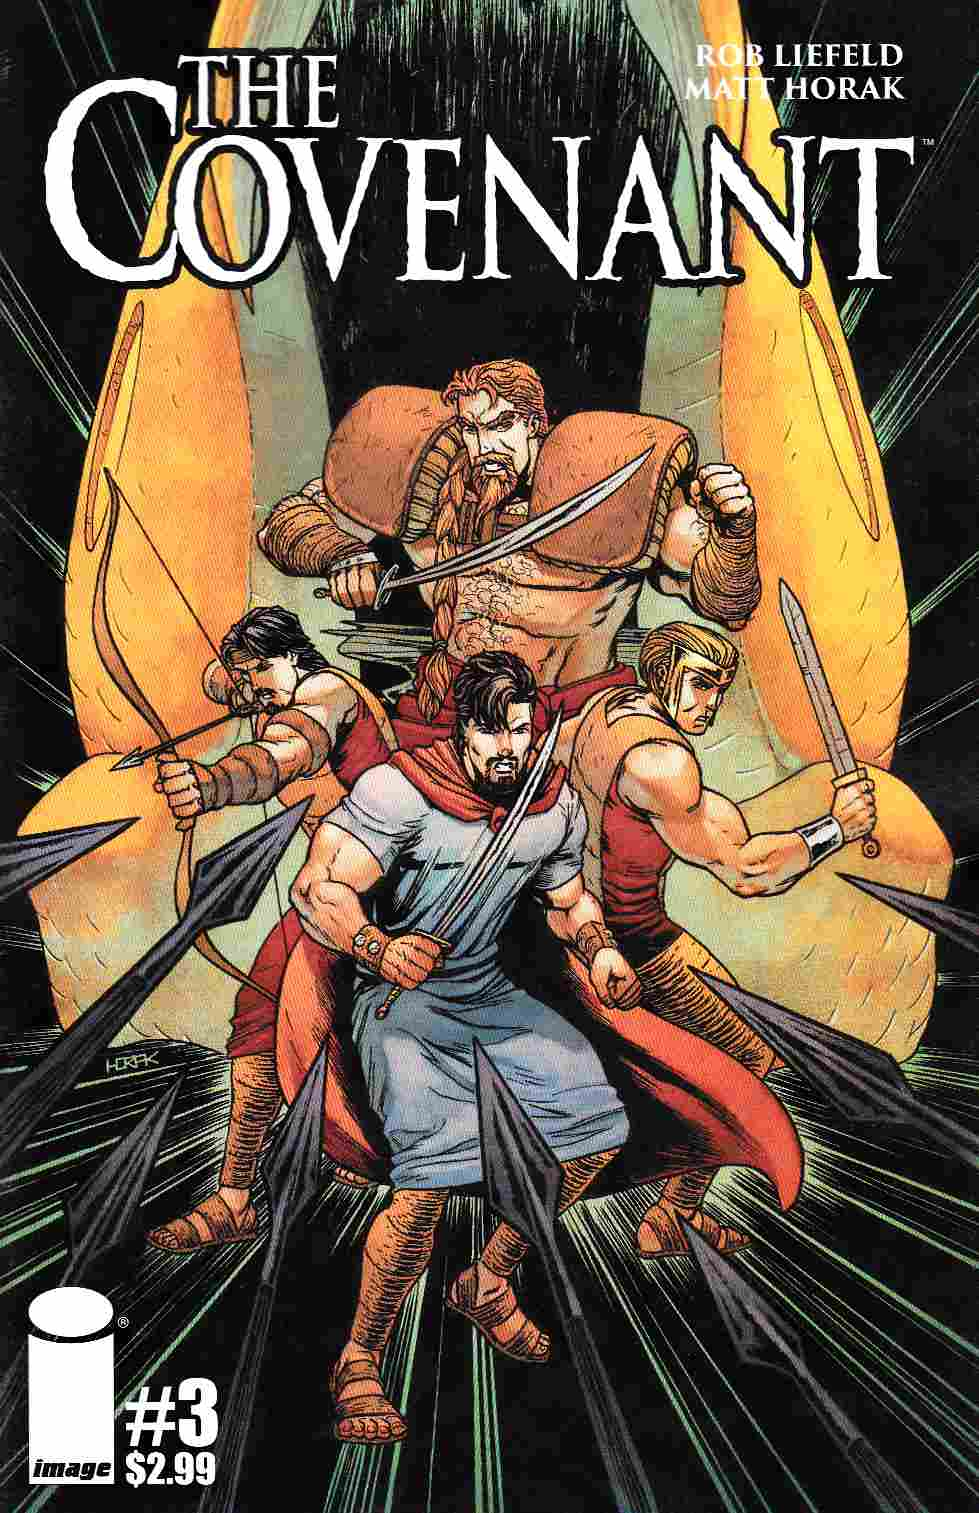 Covenant #3 Cover B- Horak [Image Comic]